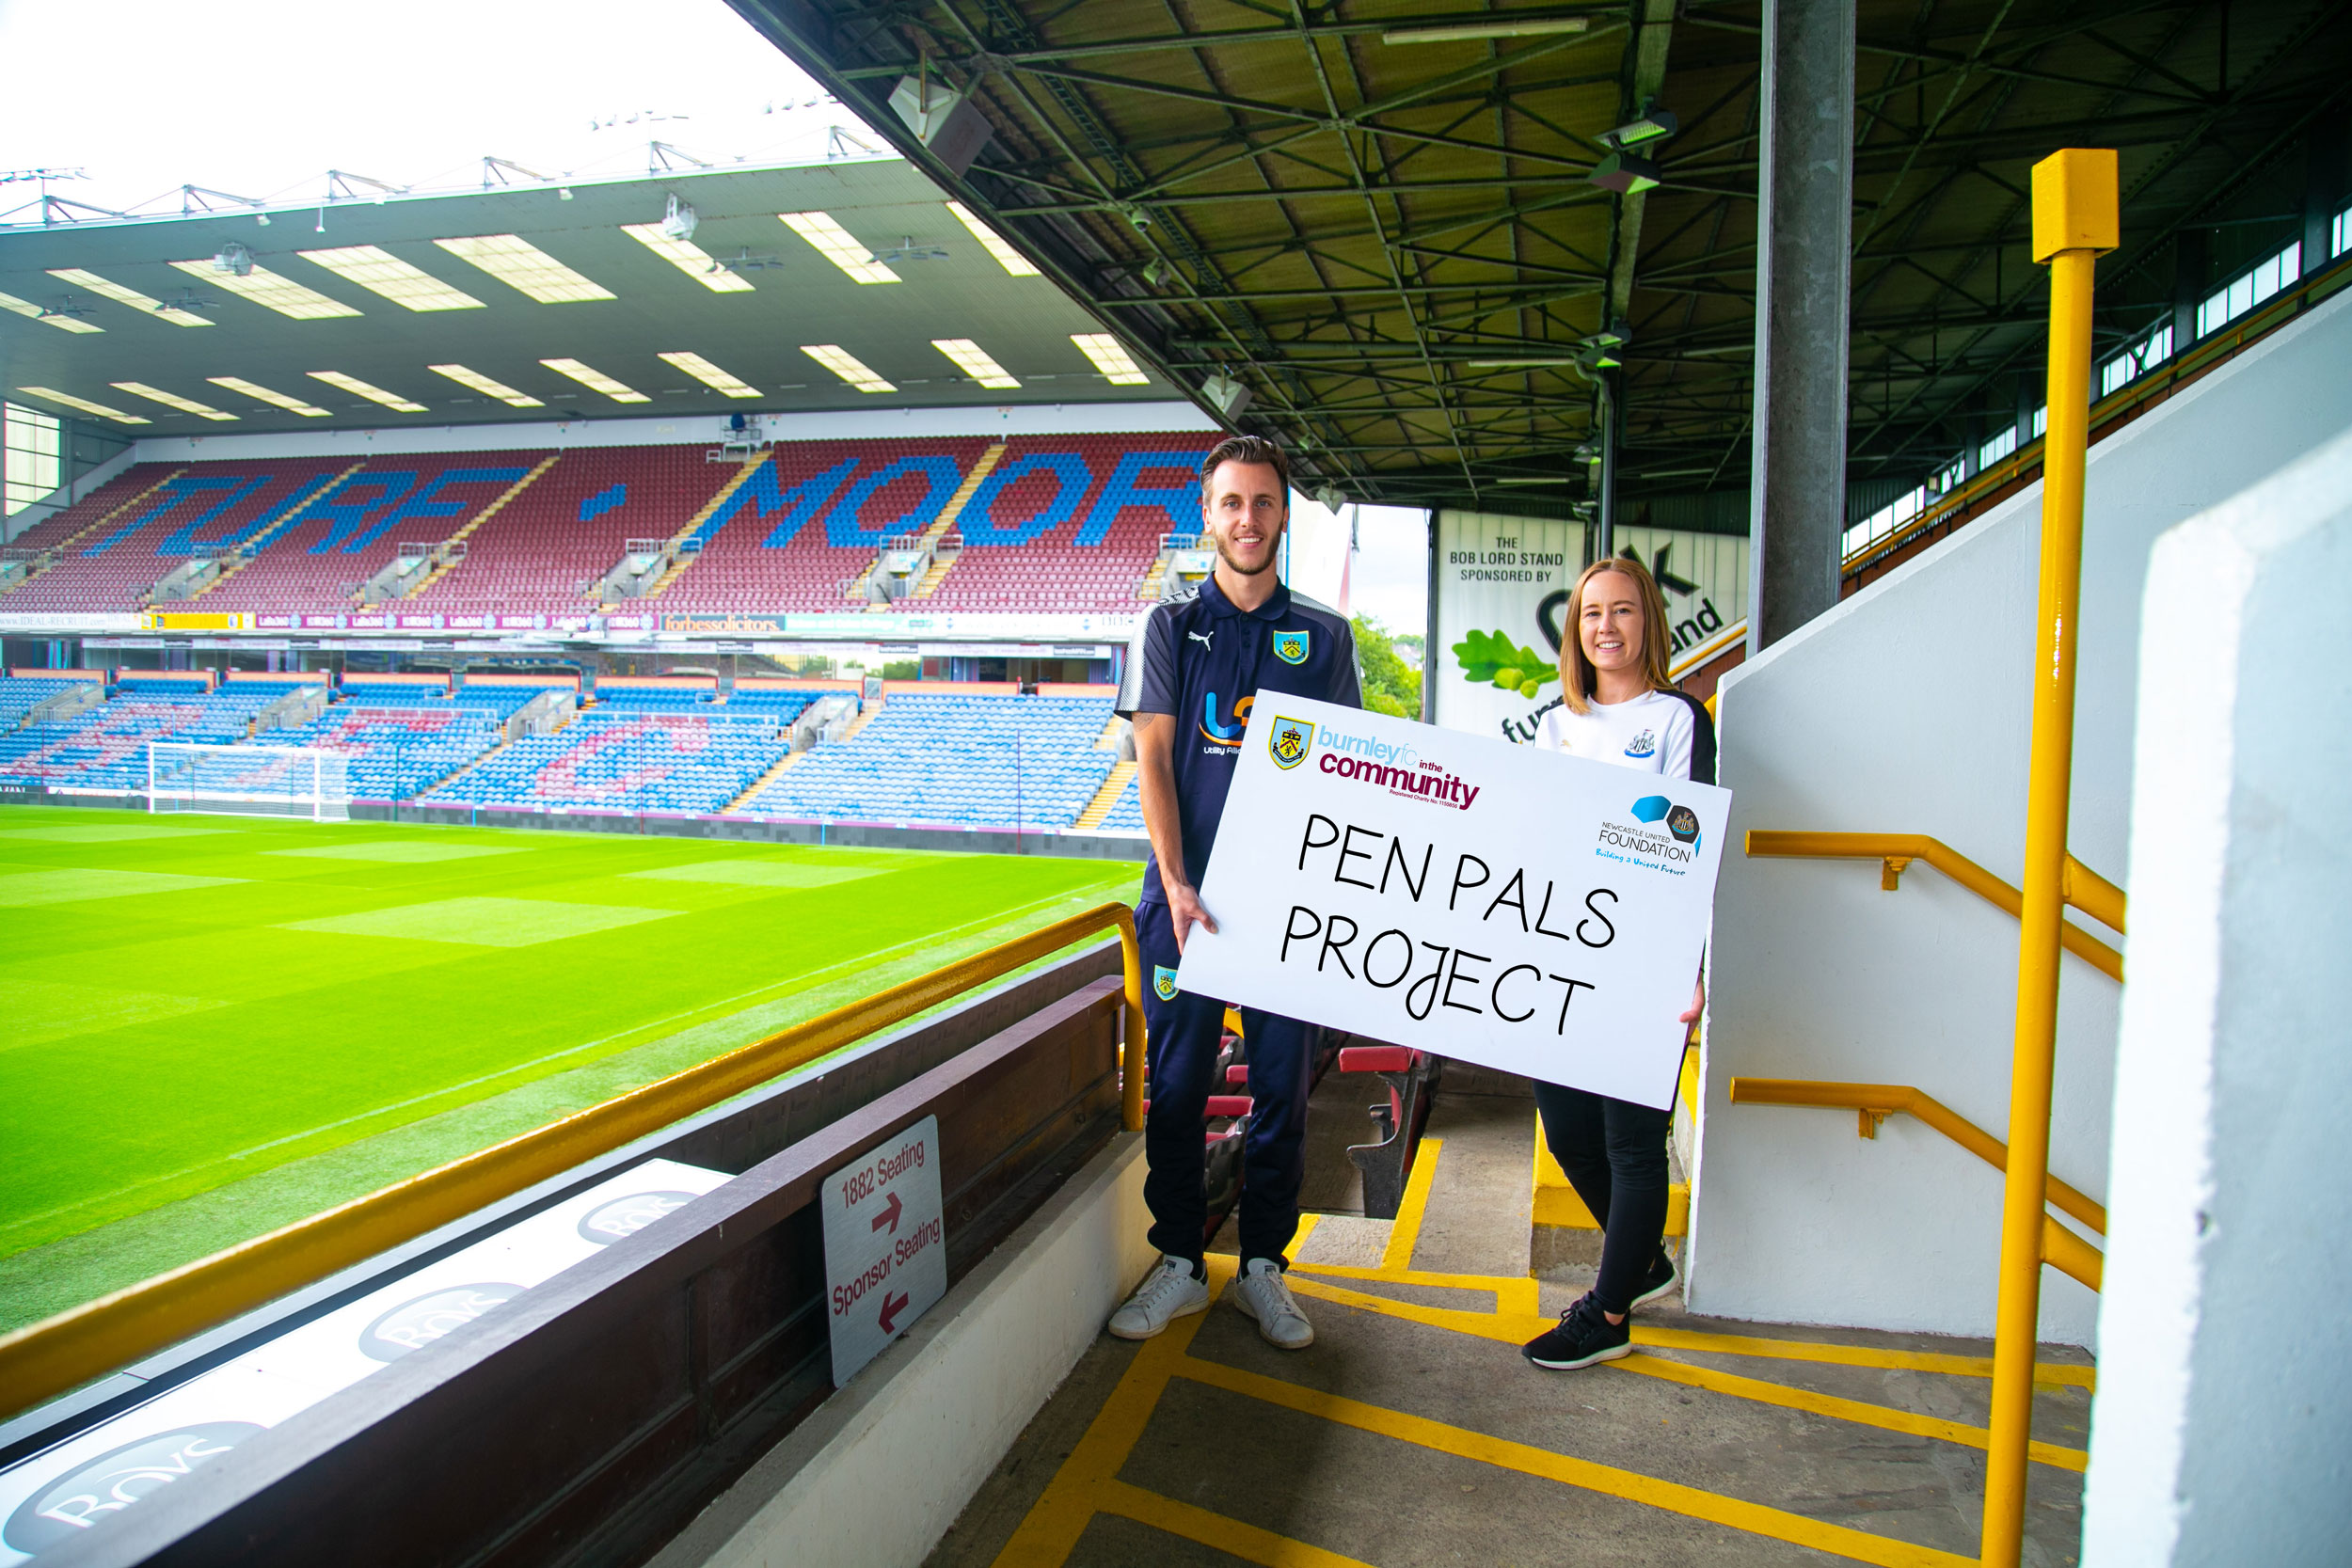 Introducing the Pen Pals Project